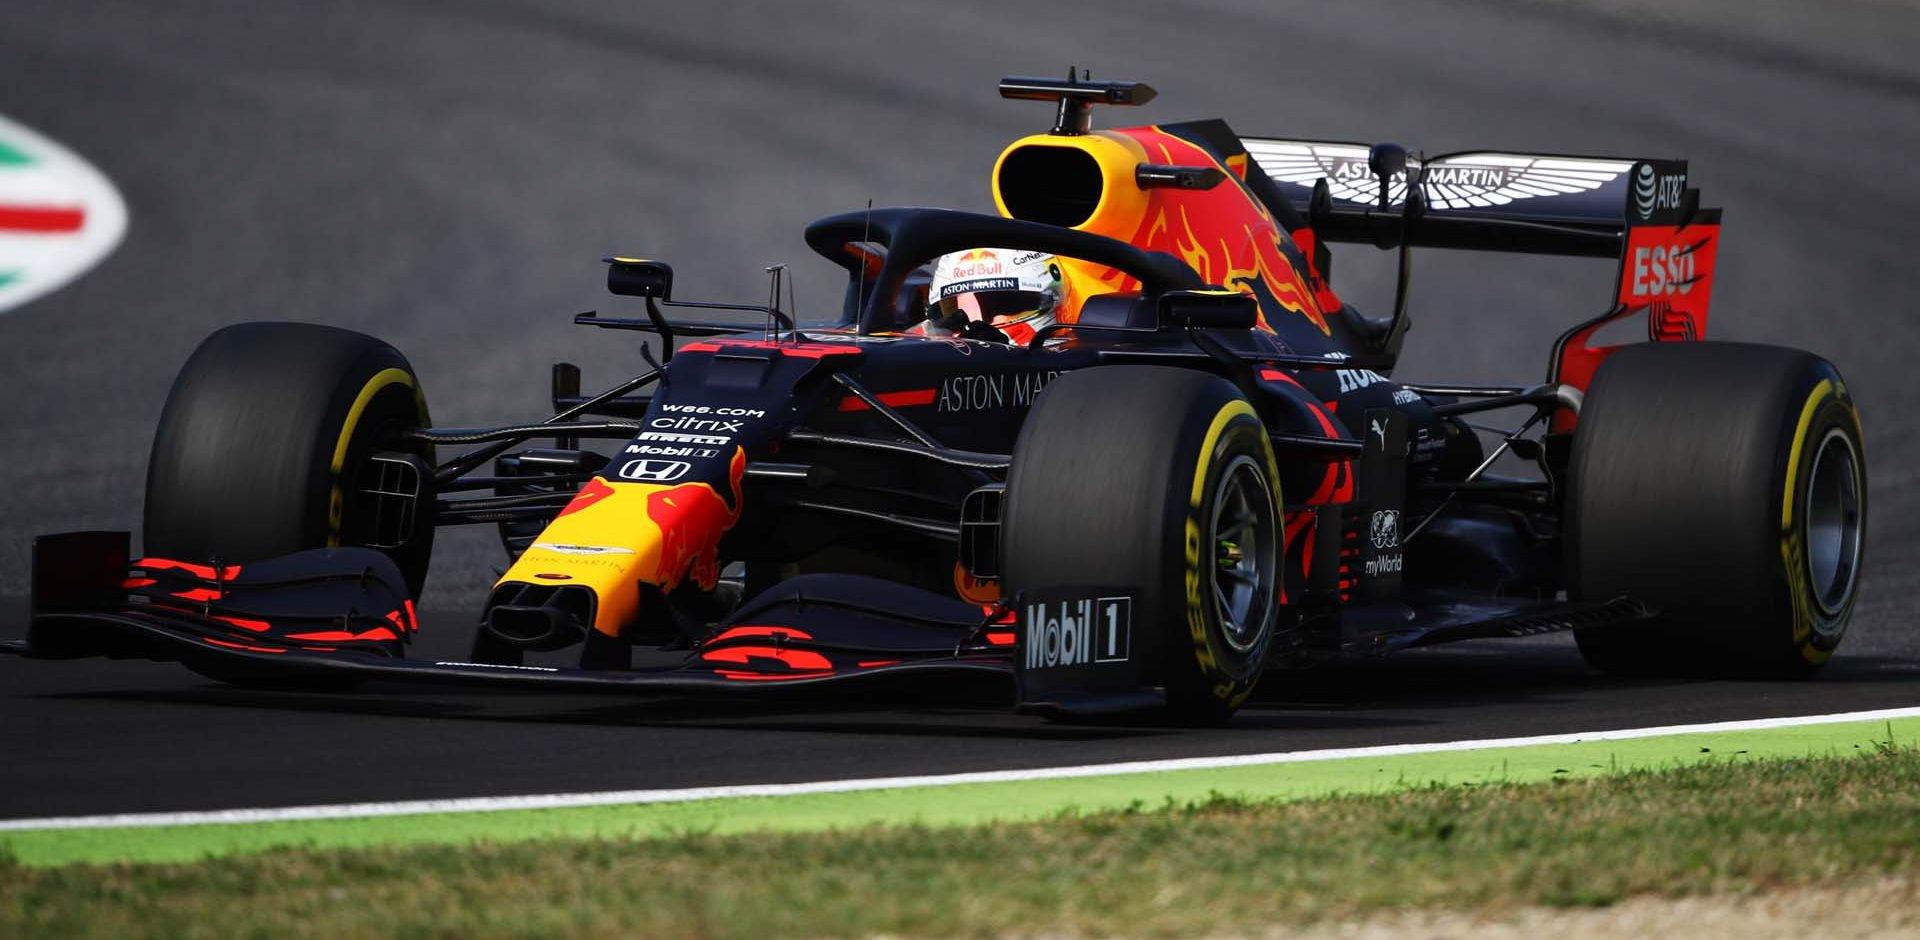 SCARPERIA, ITALY - SEPTEMBER 11: Max Verstappen of the Netherlands driving the (33) Aston Martin Red Bull Racing RB16 on track during practice ahead of the F1 Grand Prix of Tuscany at Mugello Circuit on September 11, 2020 in Scarperia, Italy. (Photo by Bryn Lennon/Getty Images)